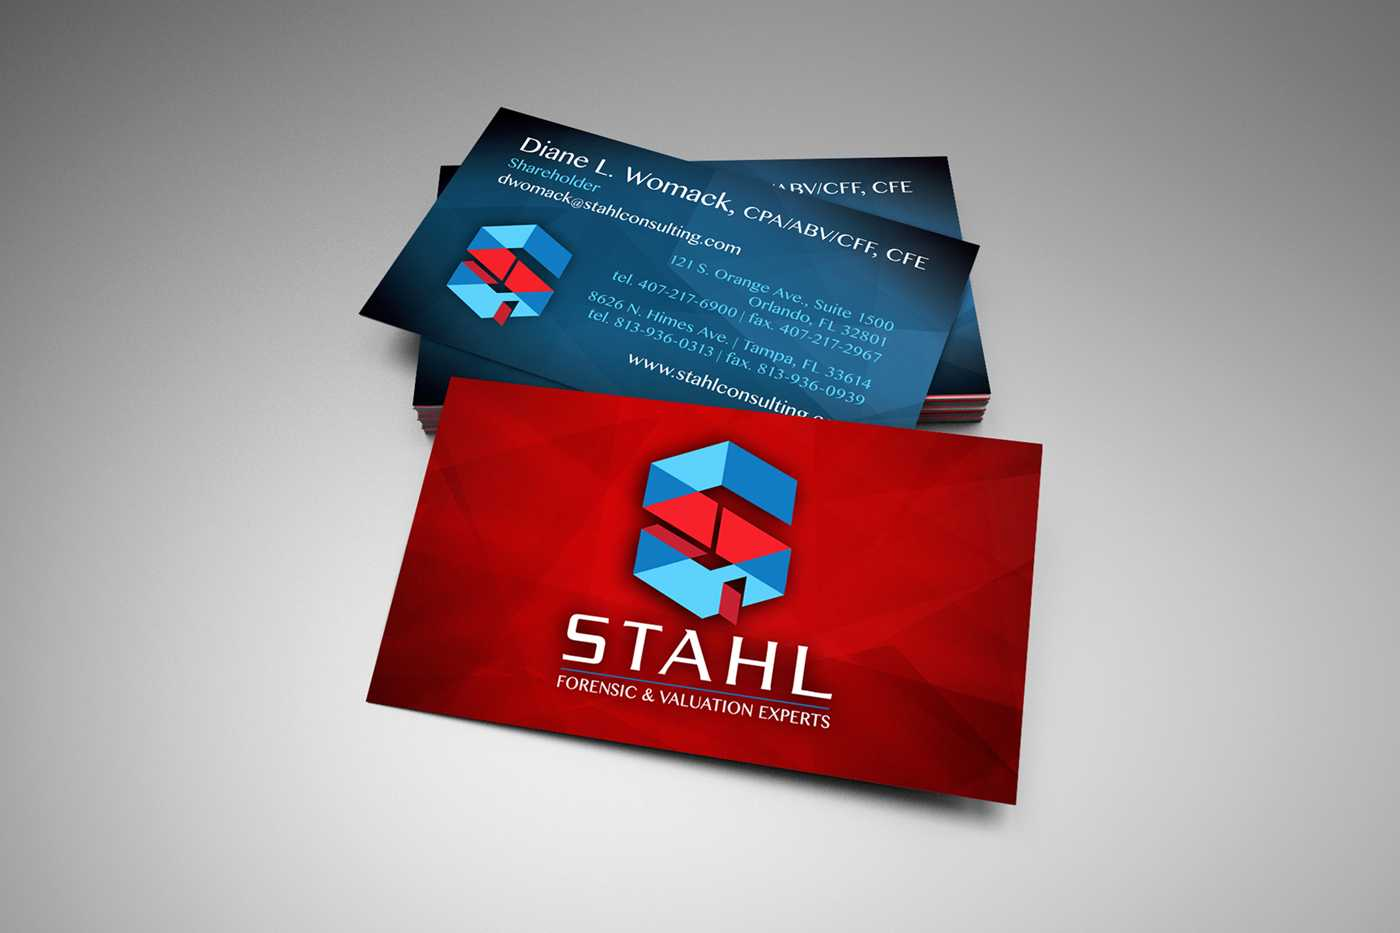 Stahl stationery design and printing 2